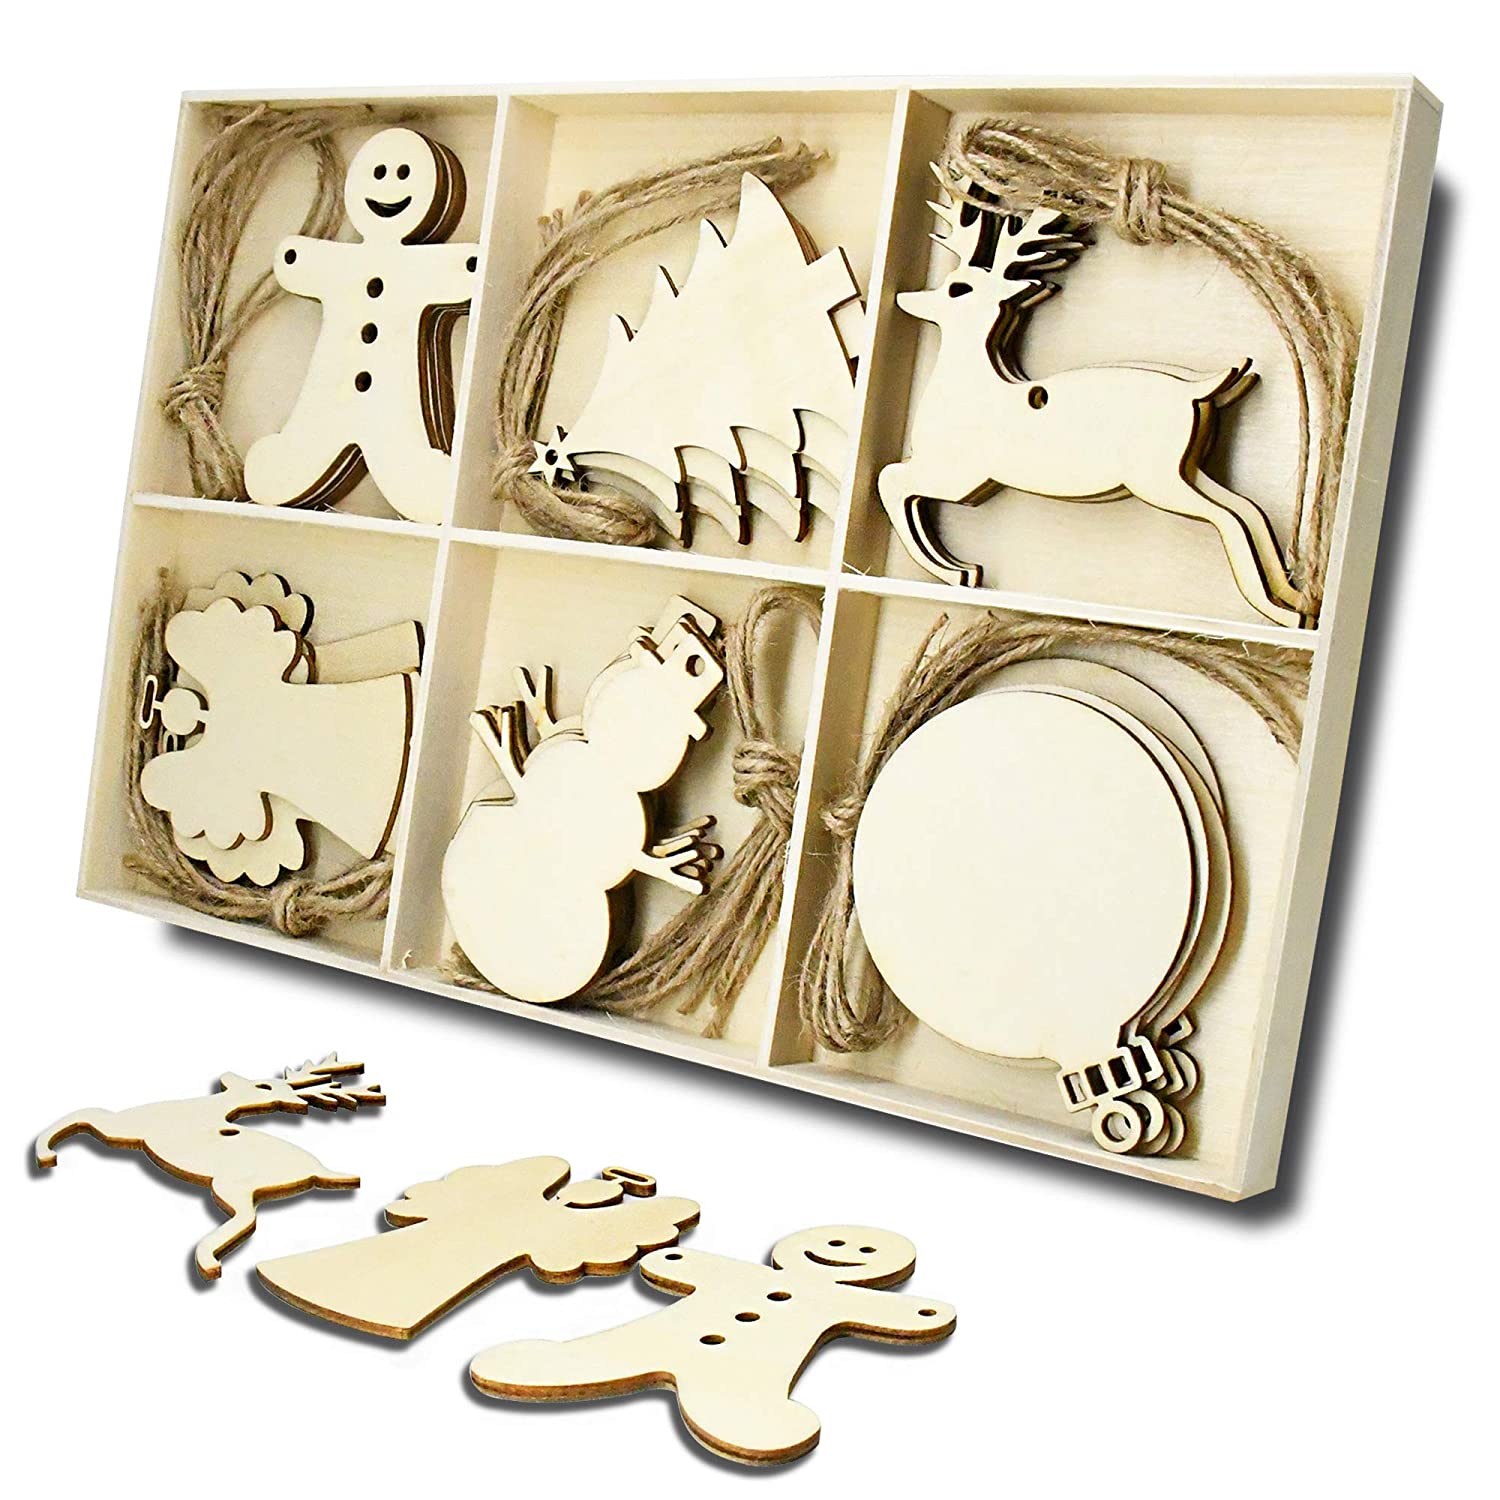 Wooden Christmas Tree and Snowman Shaped Embellishments Hanging Ornaments Decoration with Natural Twine (Each of 5) JHYQ-CA